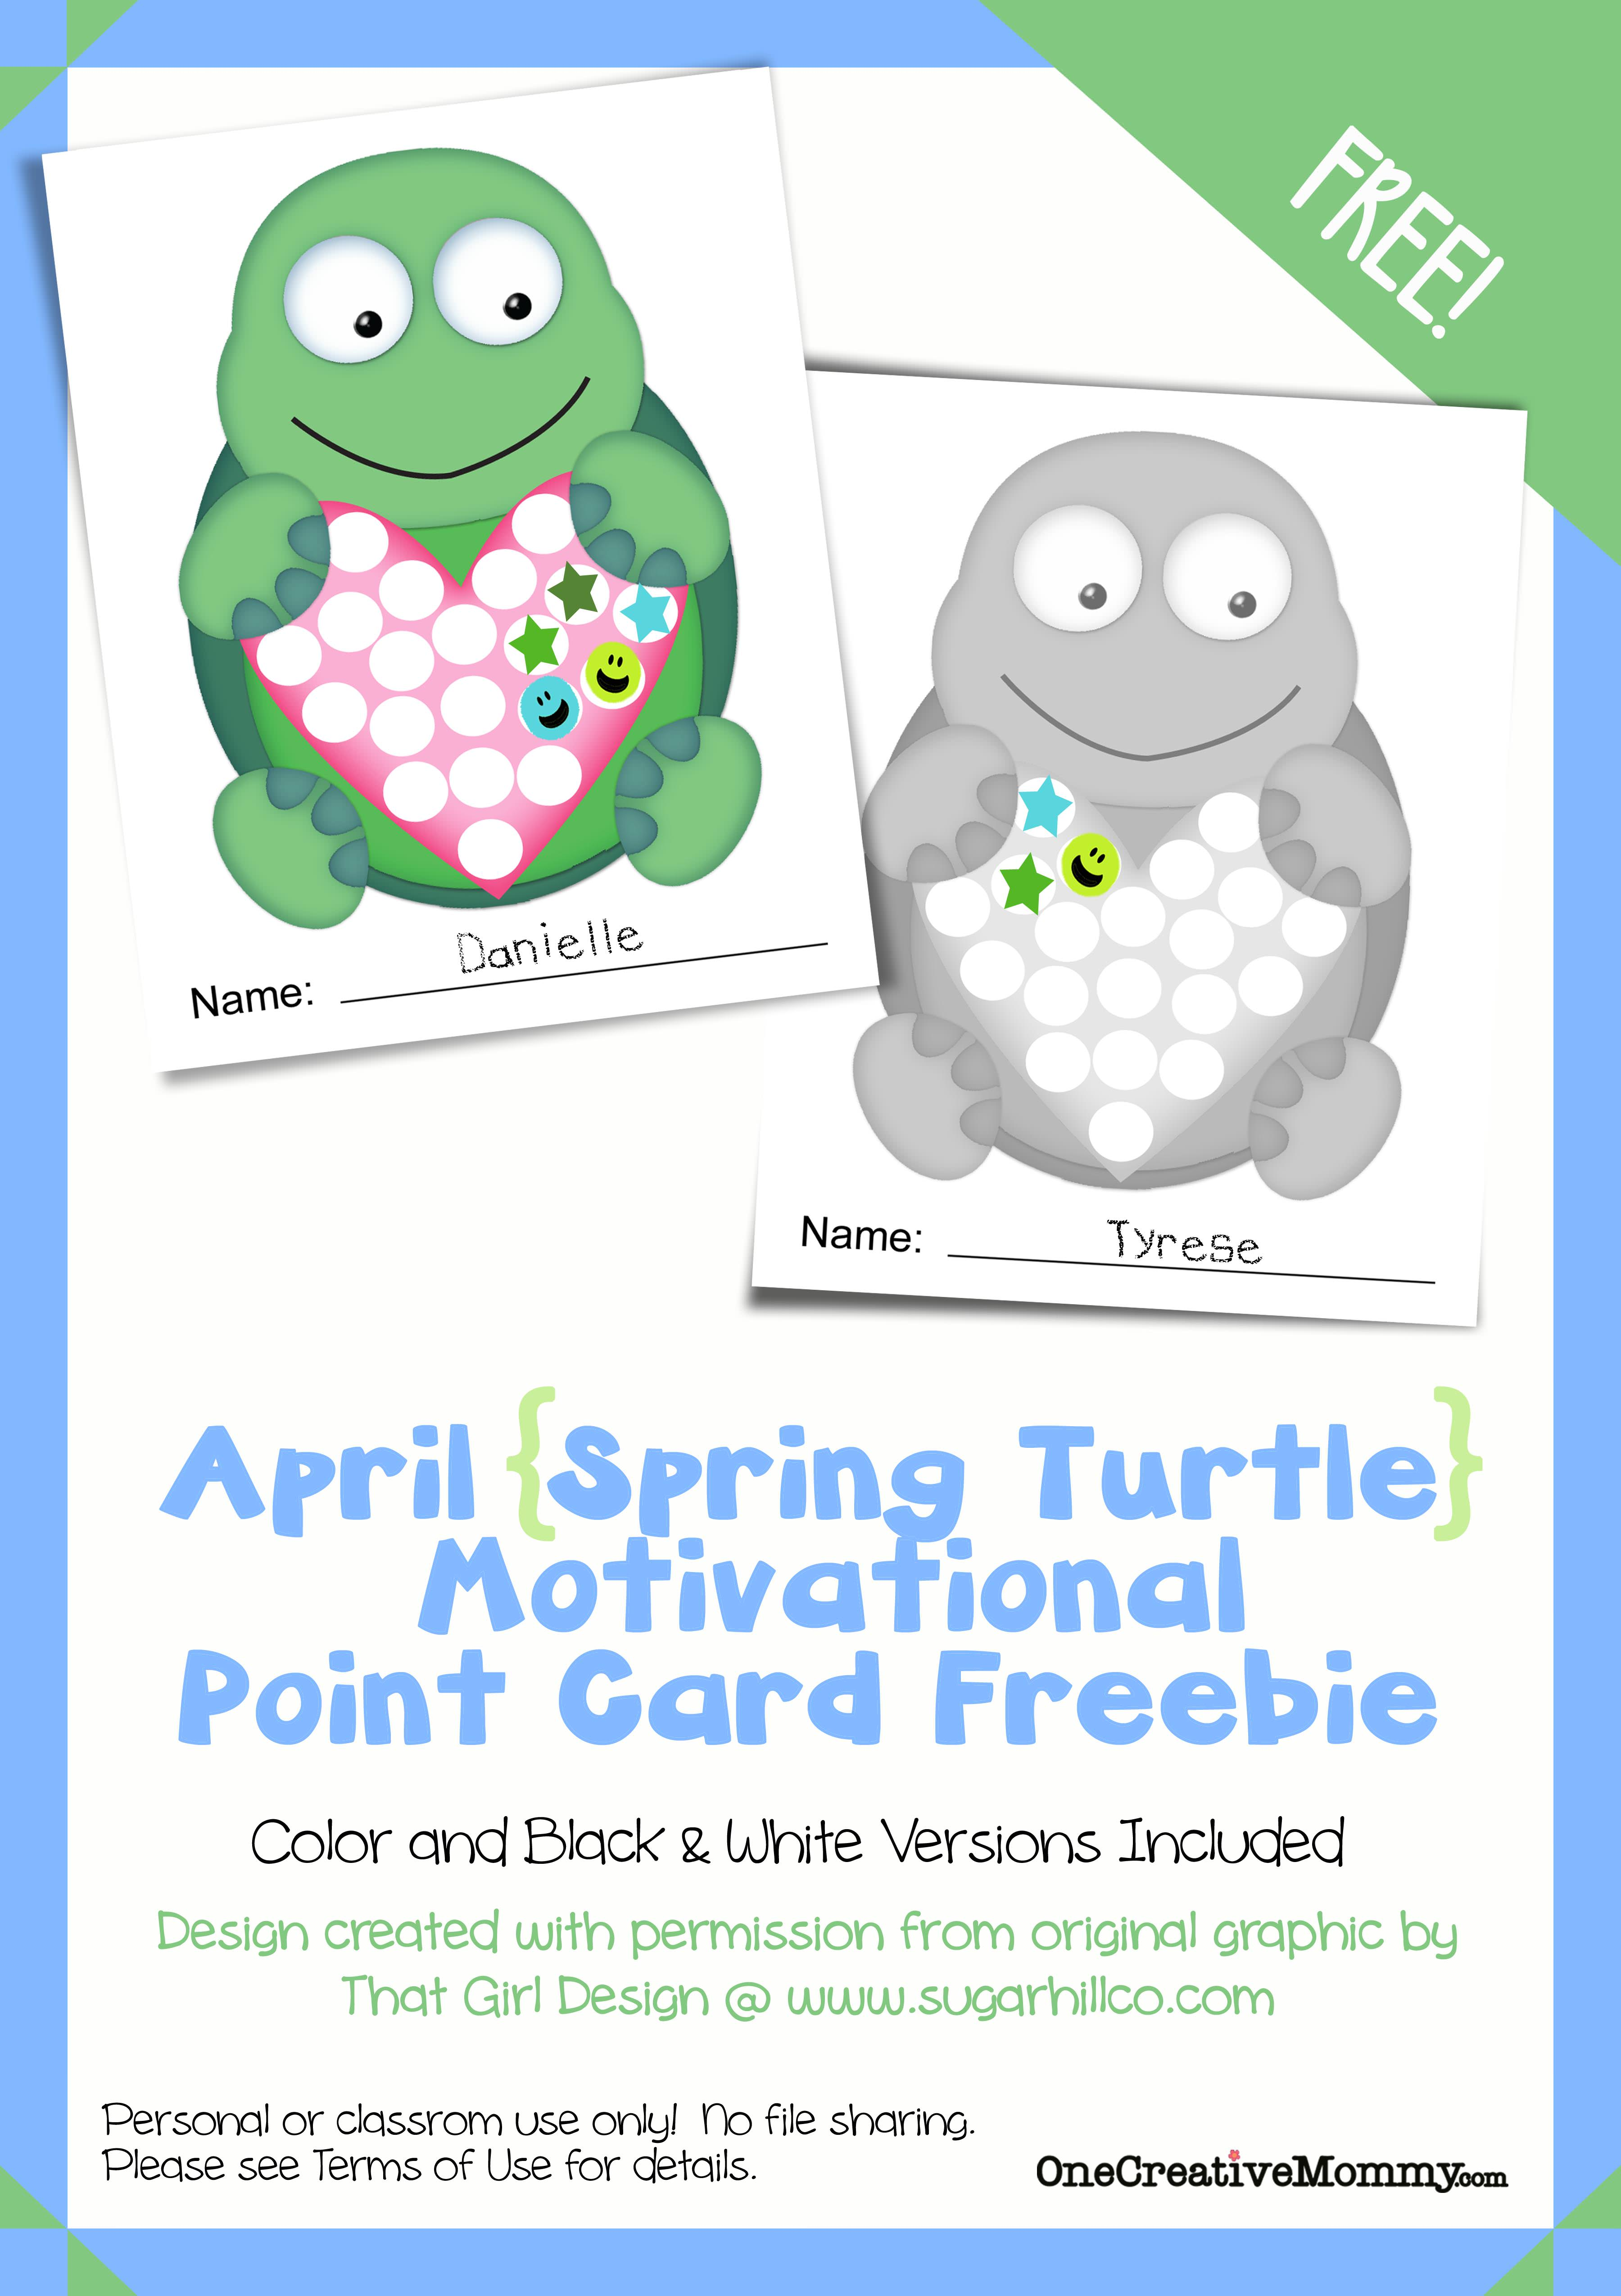 Color cards for kids - Motivational Point Cards For Kids Spring Turtle April Freebie Printable From Onecreativemommy Com